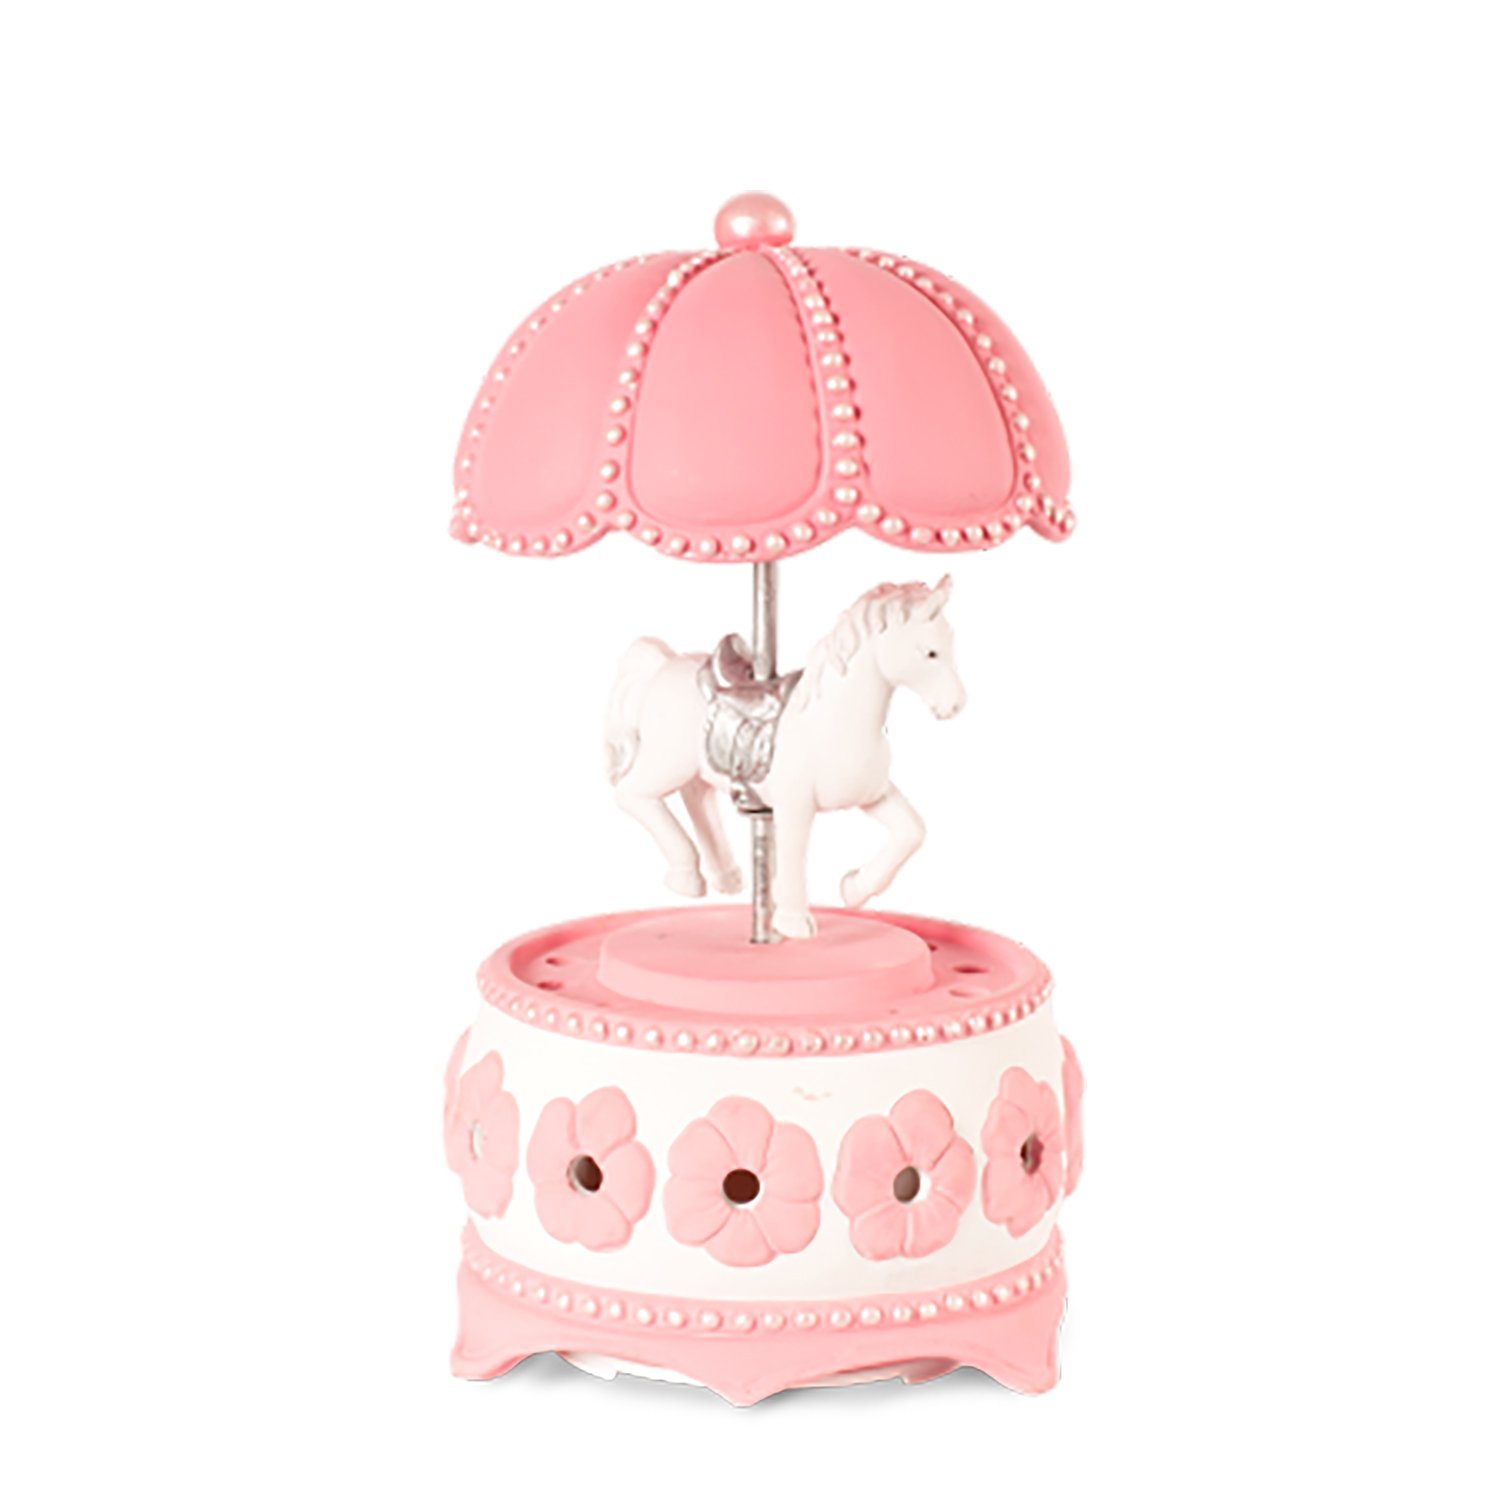 Carousel AromaBreeze Fragrance Diffuser - Replaces Electric Air Fresheners as the Best Home Fragrance Products - Perfect Addition to Any Childrens Room Decor - Doubles as Night LightsCLEARANCE ITEM